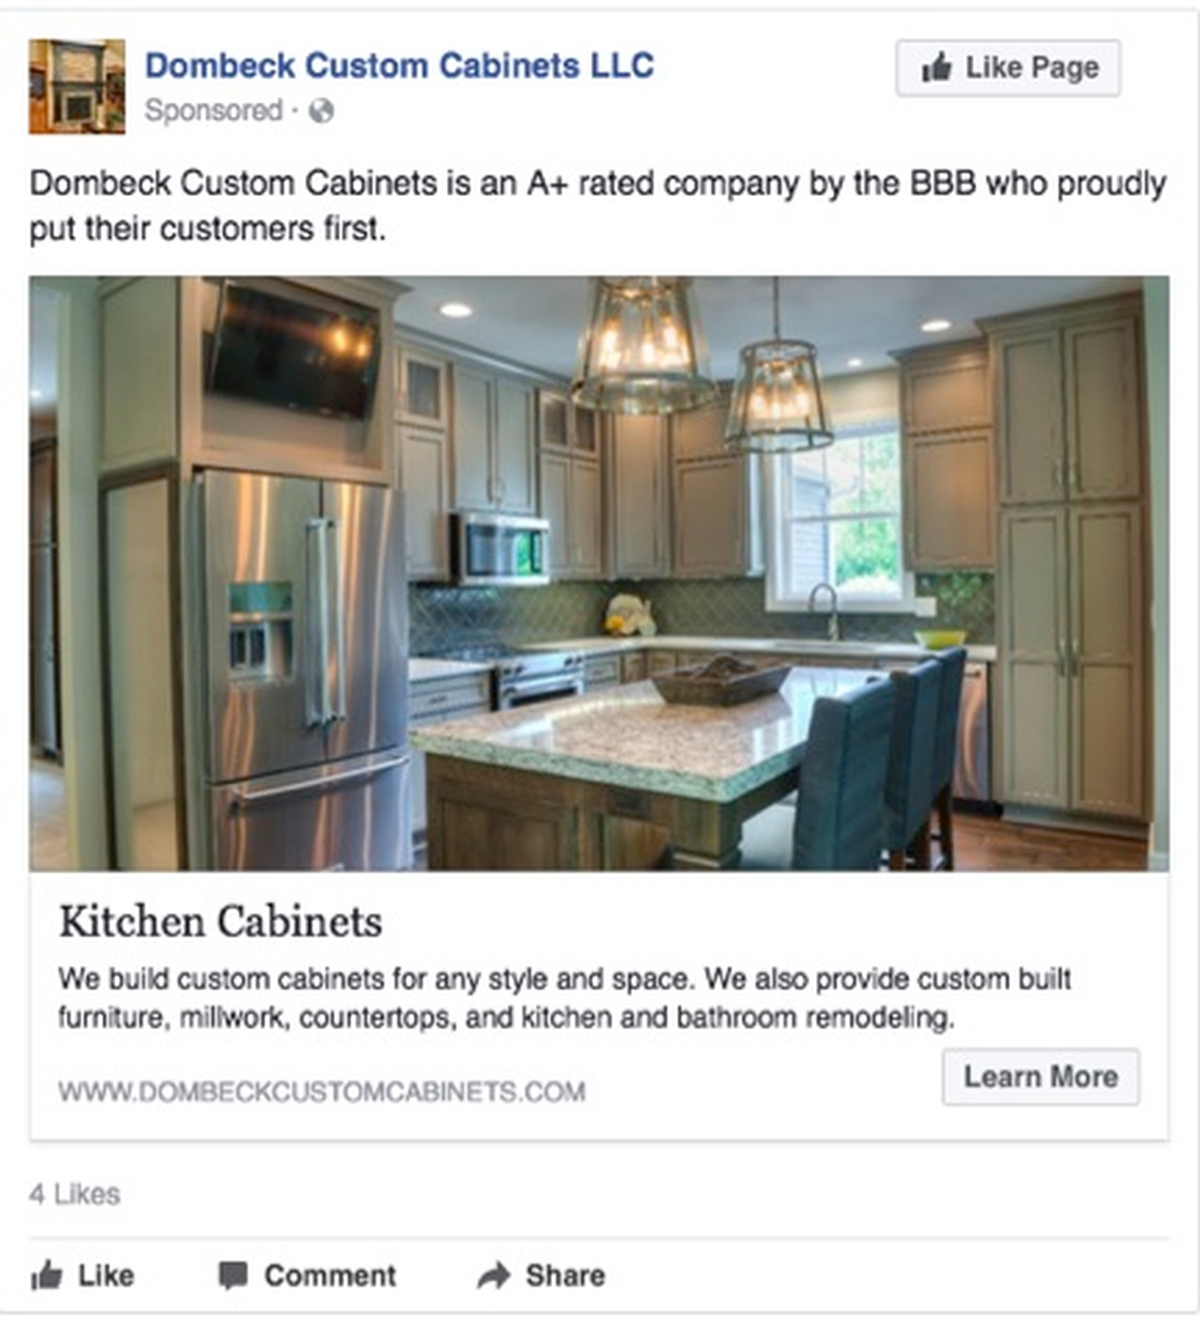 Virtual Vision launched a click to website ad campaign for Dombeck Custom Cabinets.